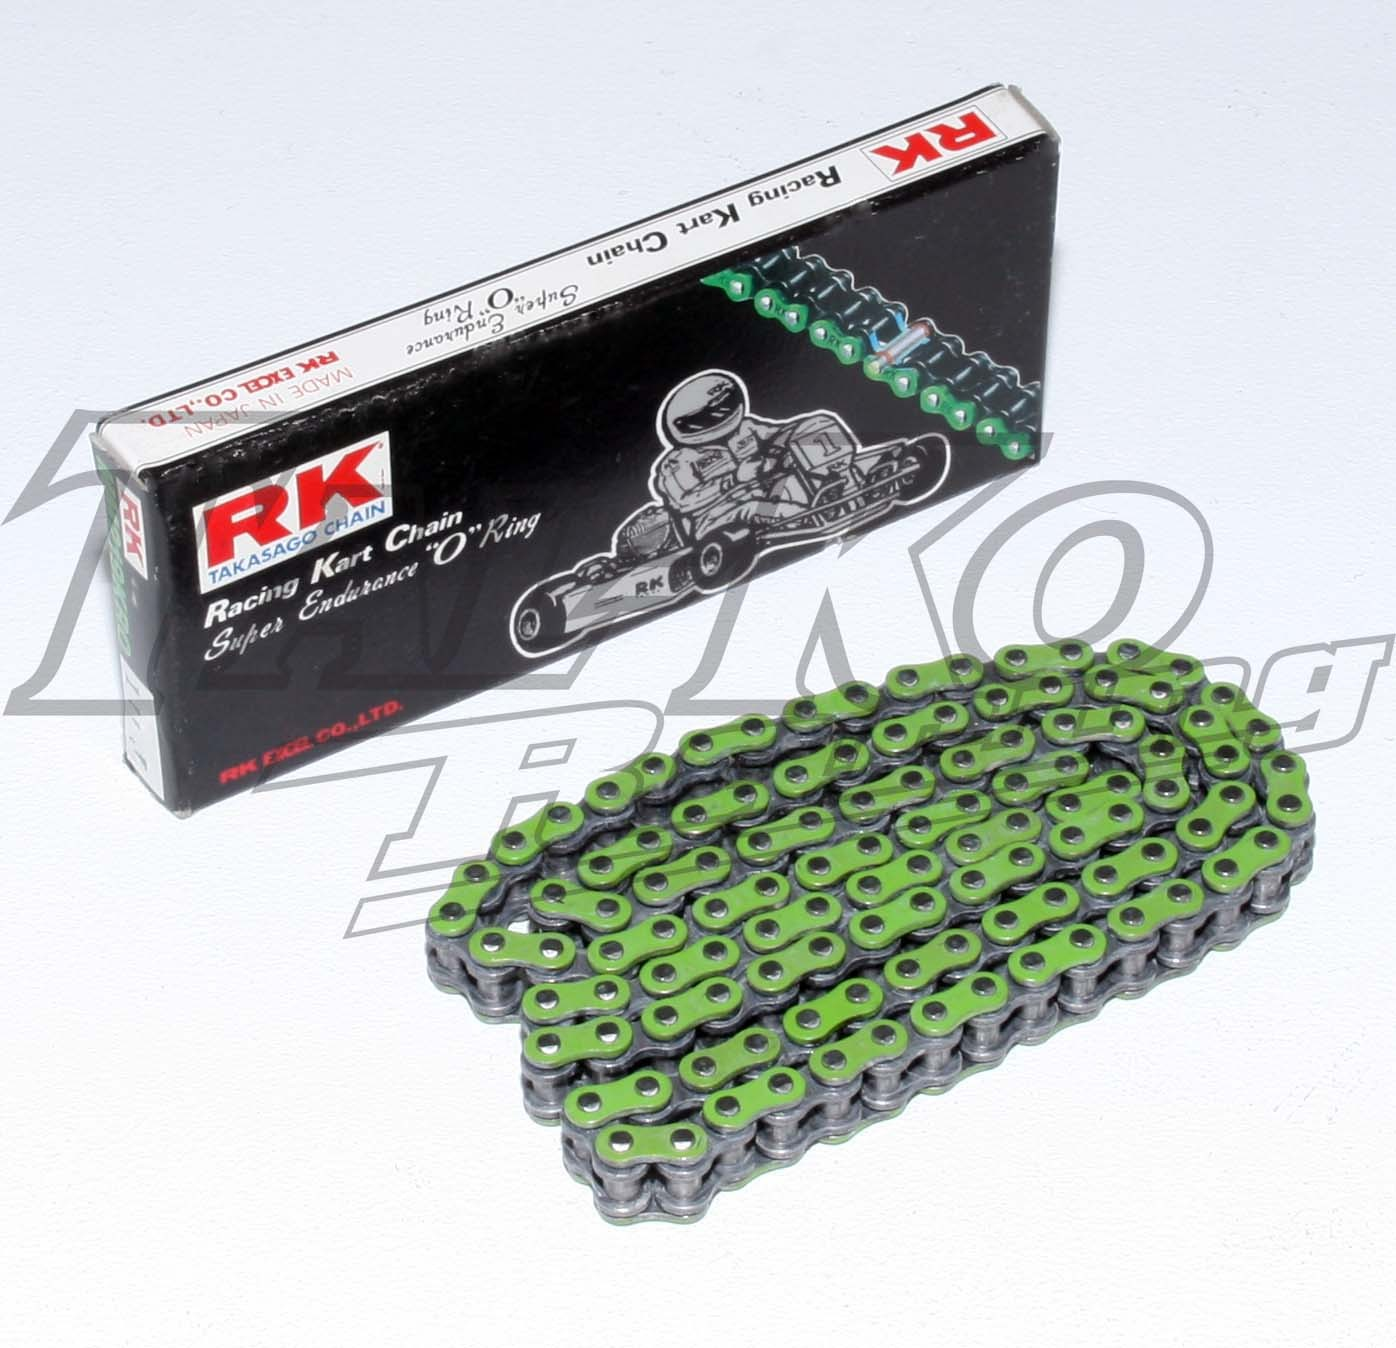 RK 219 CHAIN O-RING 106L SUPER ENDURANCE